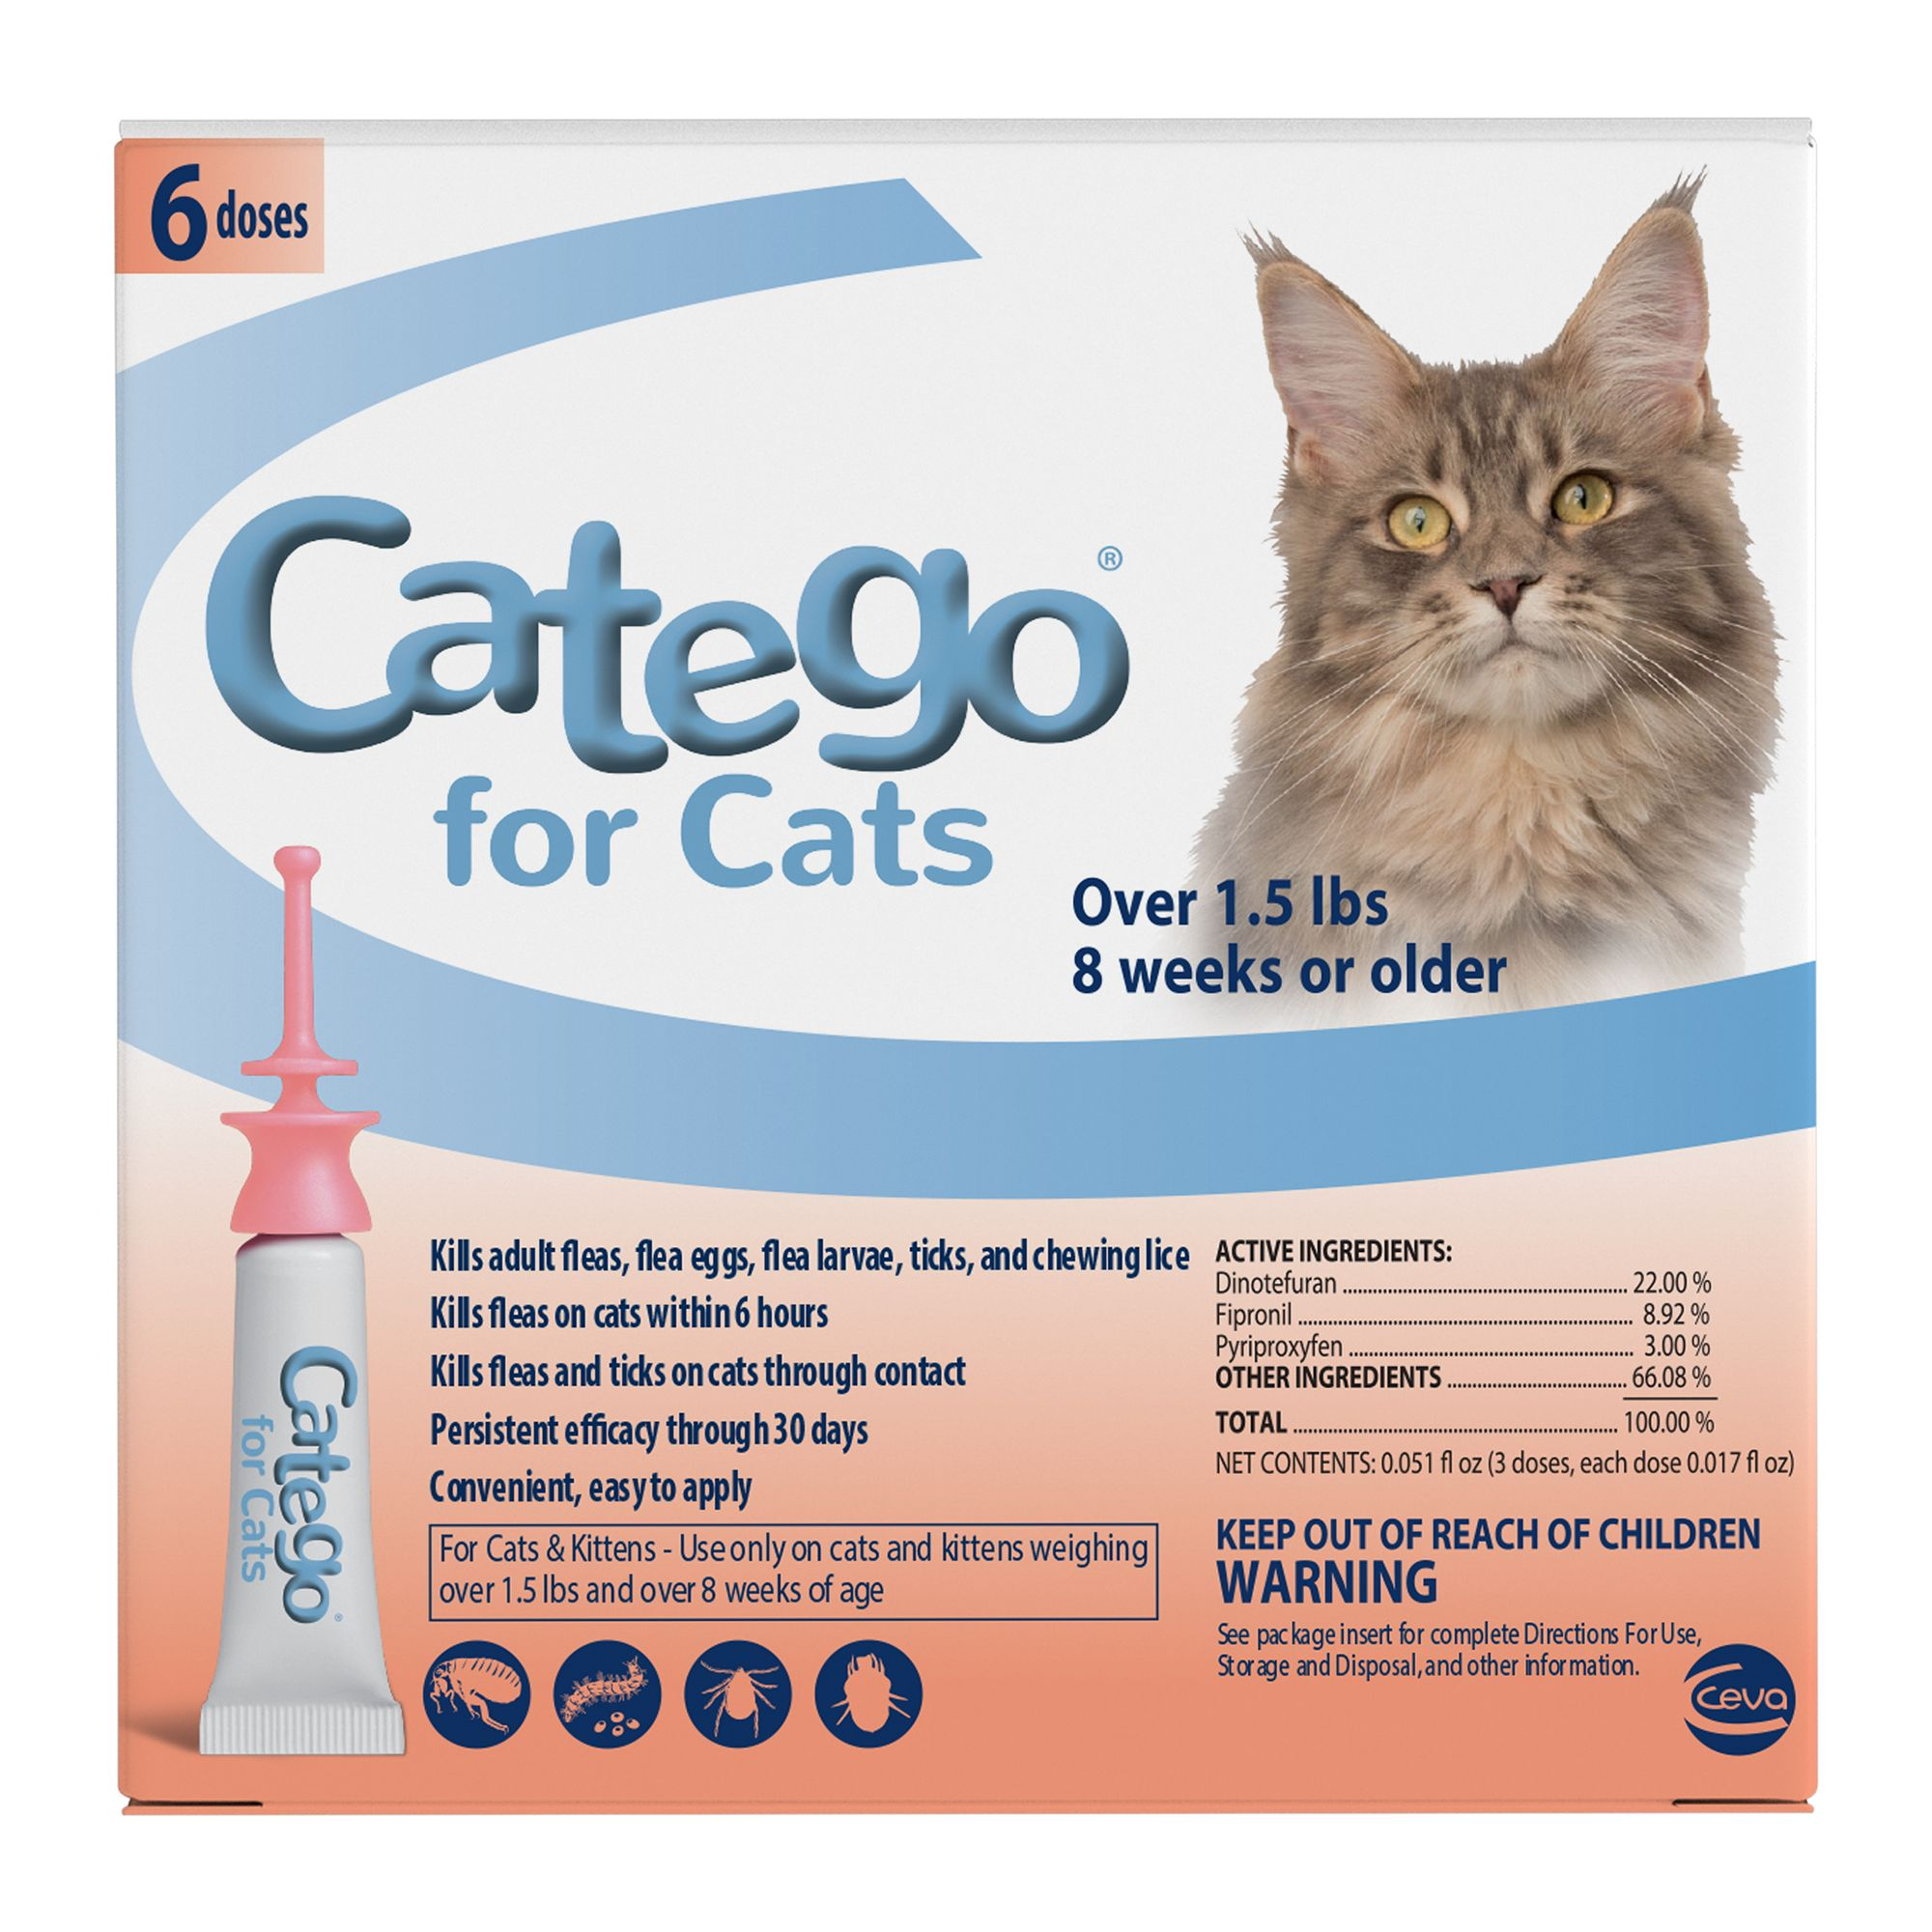 Catego Over 1.5 Lb Cat Flea Prevention And Treatment Size 6 Count